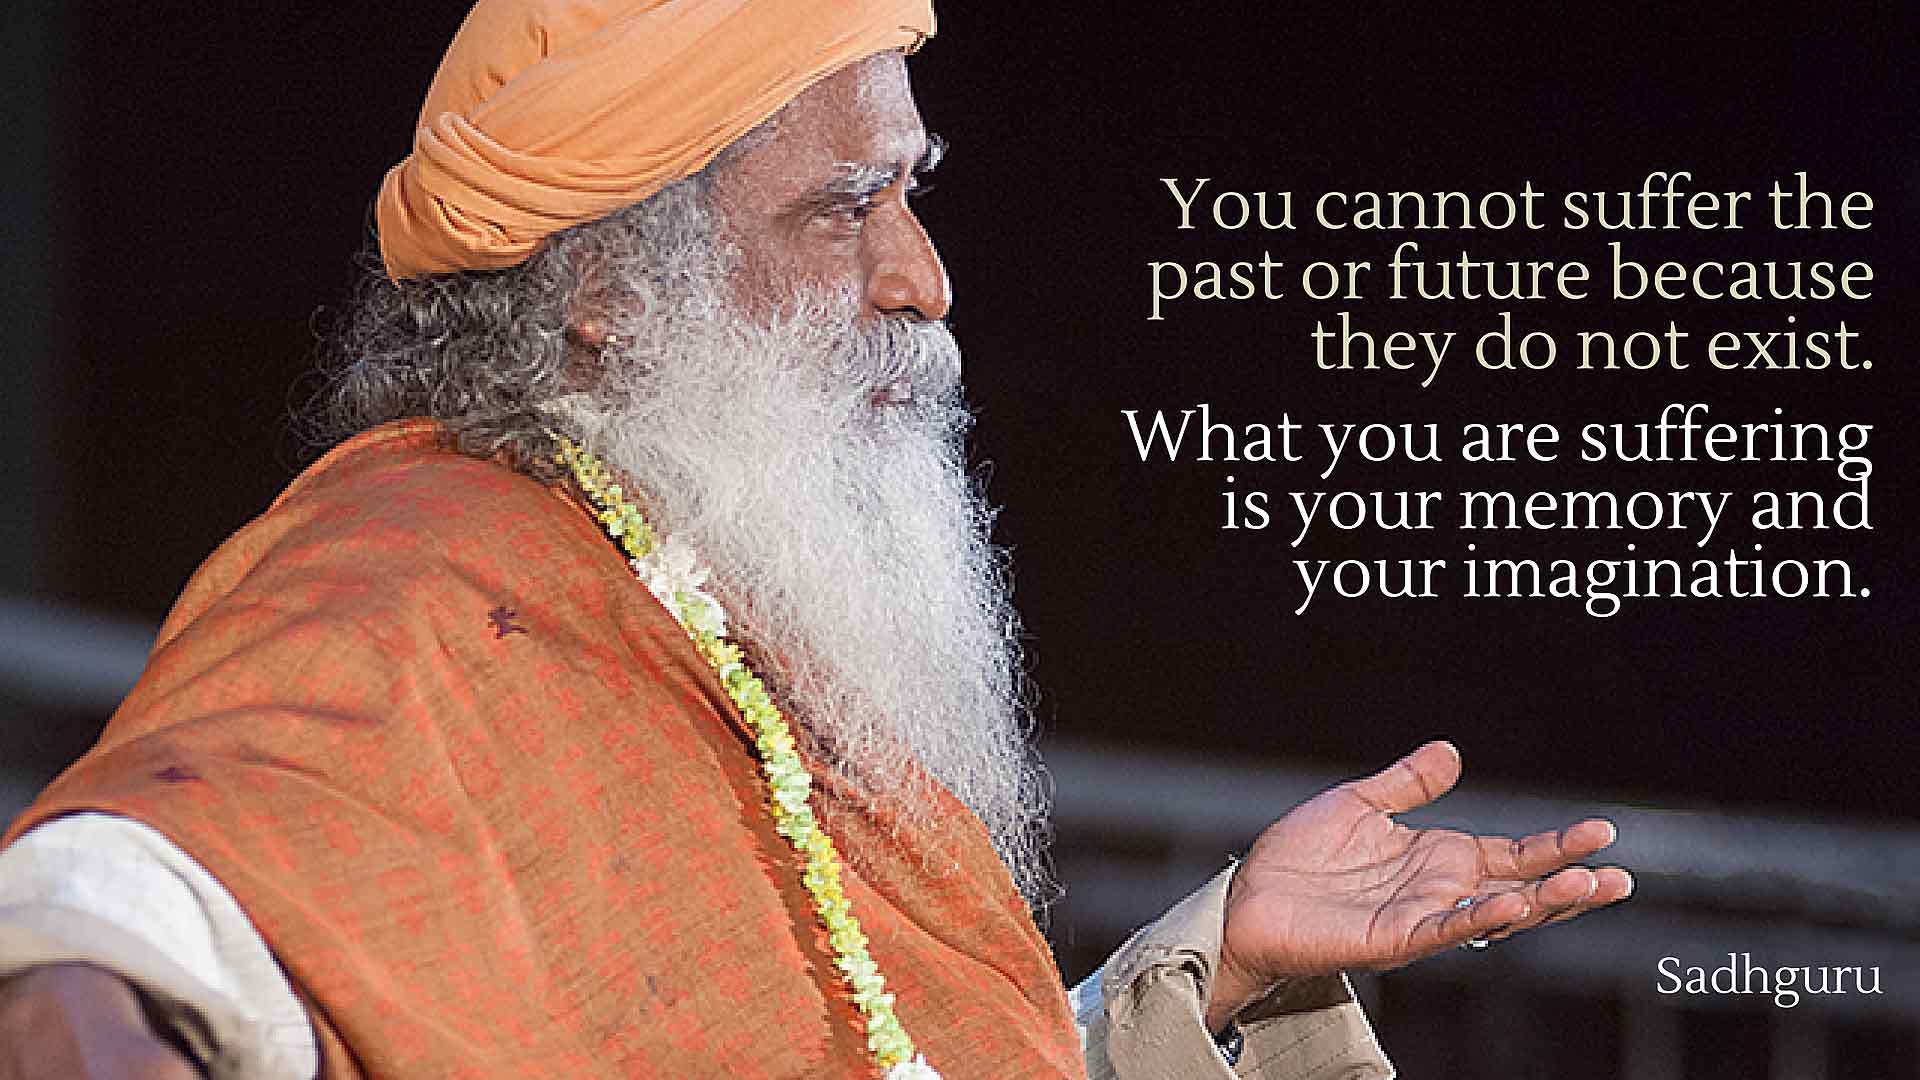 """You cannot suffer the past or future because they do not exist. What you are suffering is your memory and your imagination."" Sadhguru [1920×1080]"